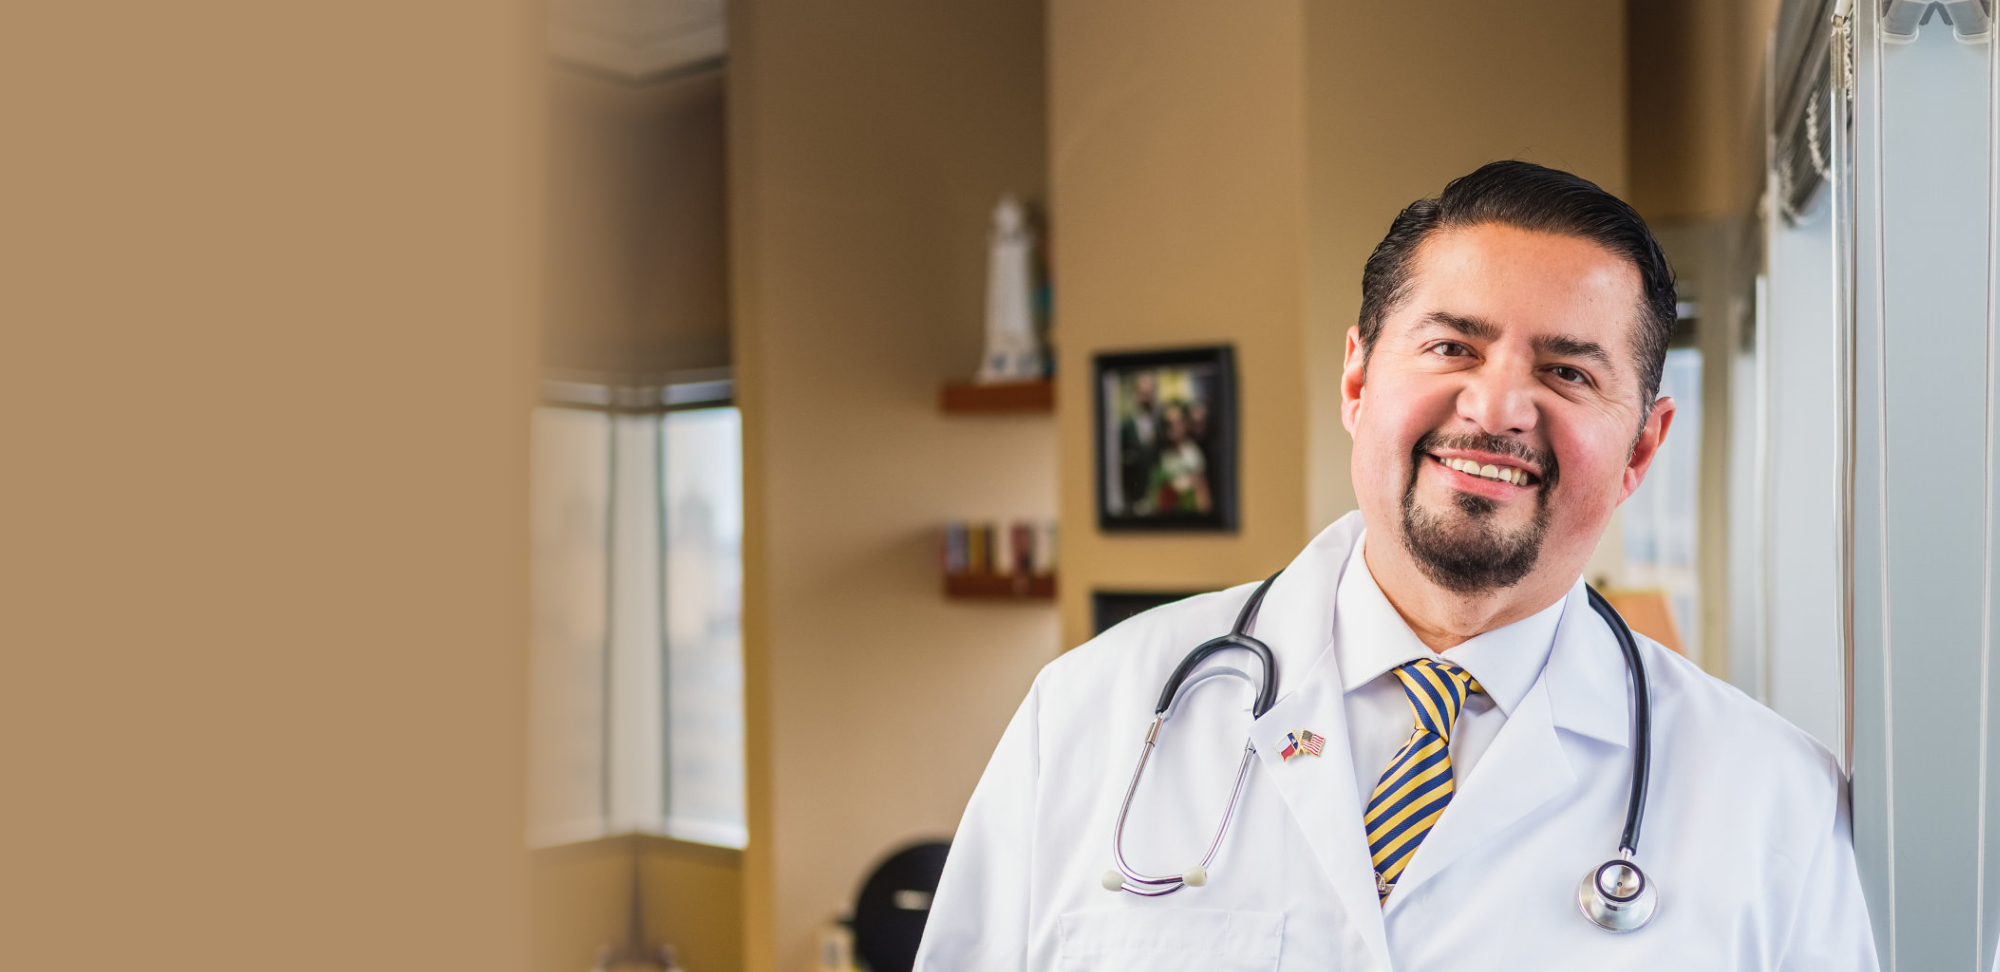 Attorney Joe Flores with stethoscope on his neck